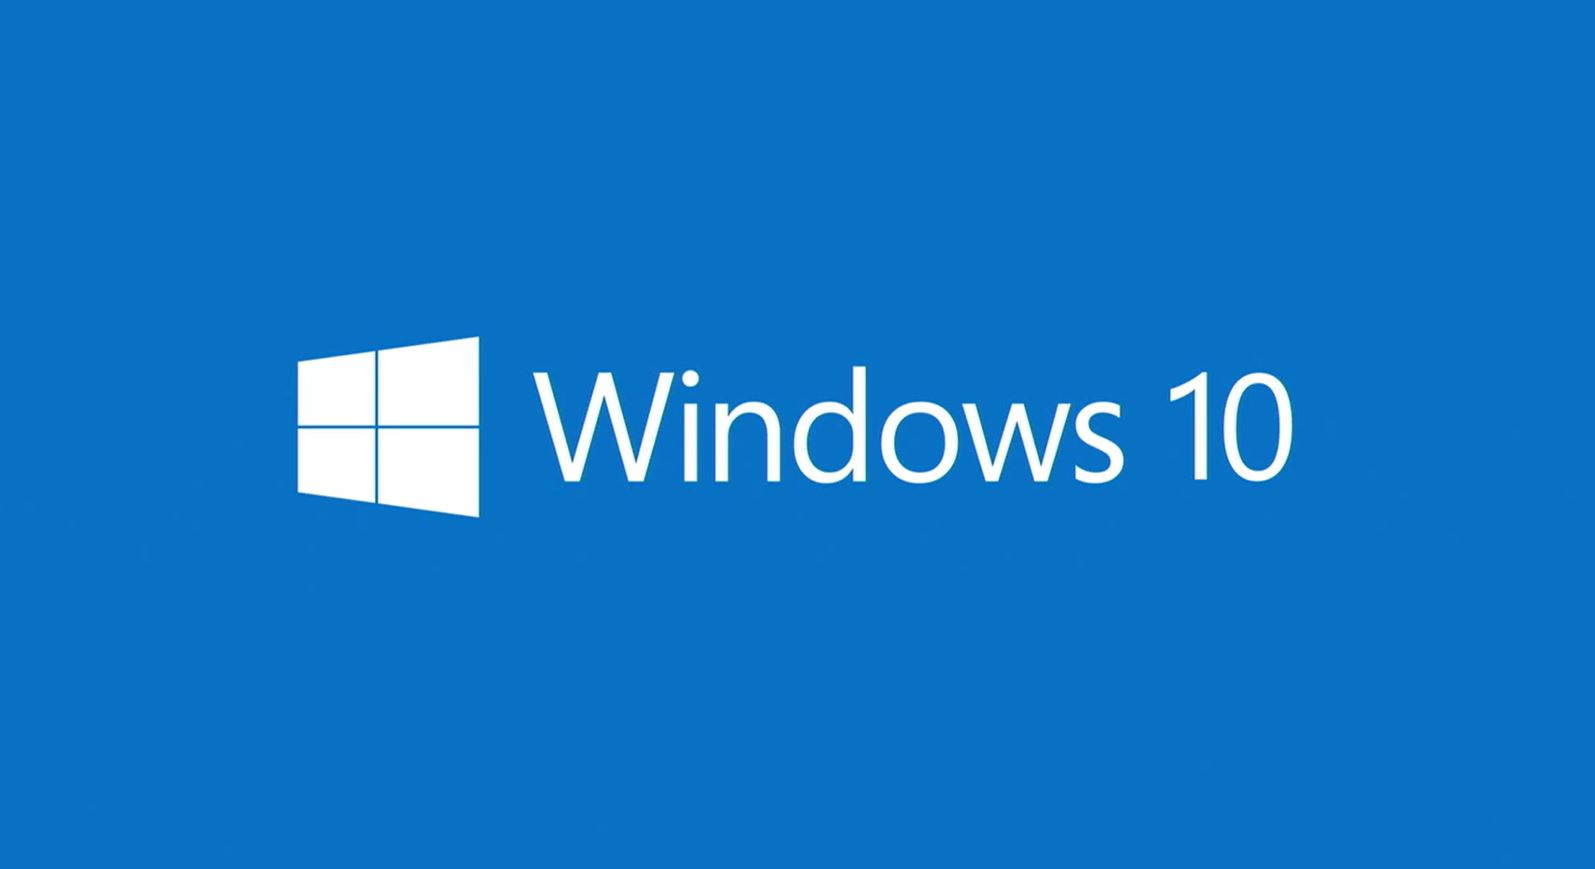 http://gearnuke.com/wp-content/uploads/2015/06/windows-10-logo.jpg